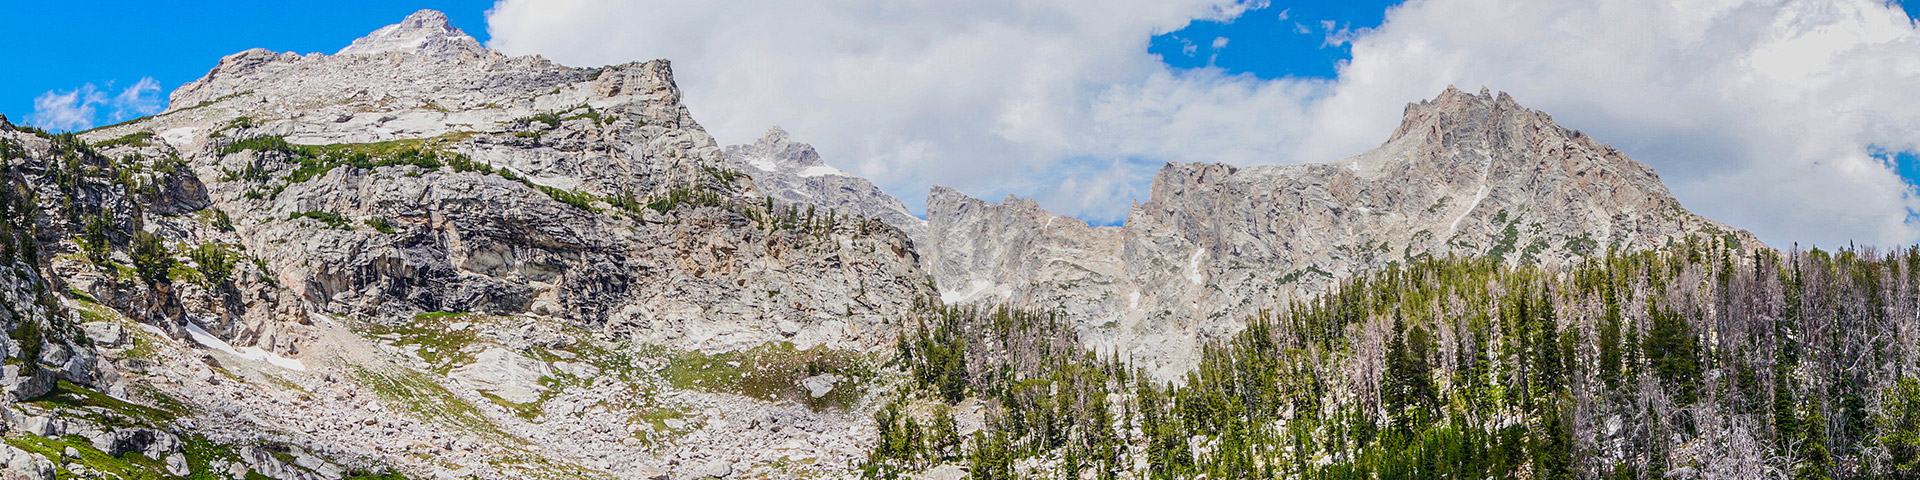 View from the Amphitheater Lake Hike in Grand Tetons